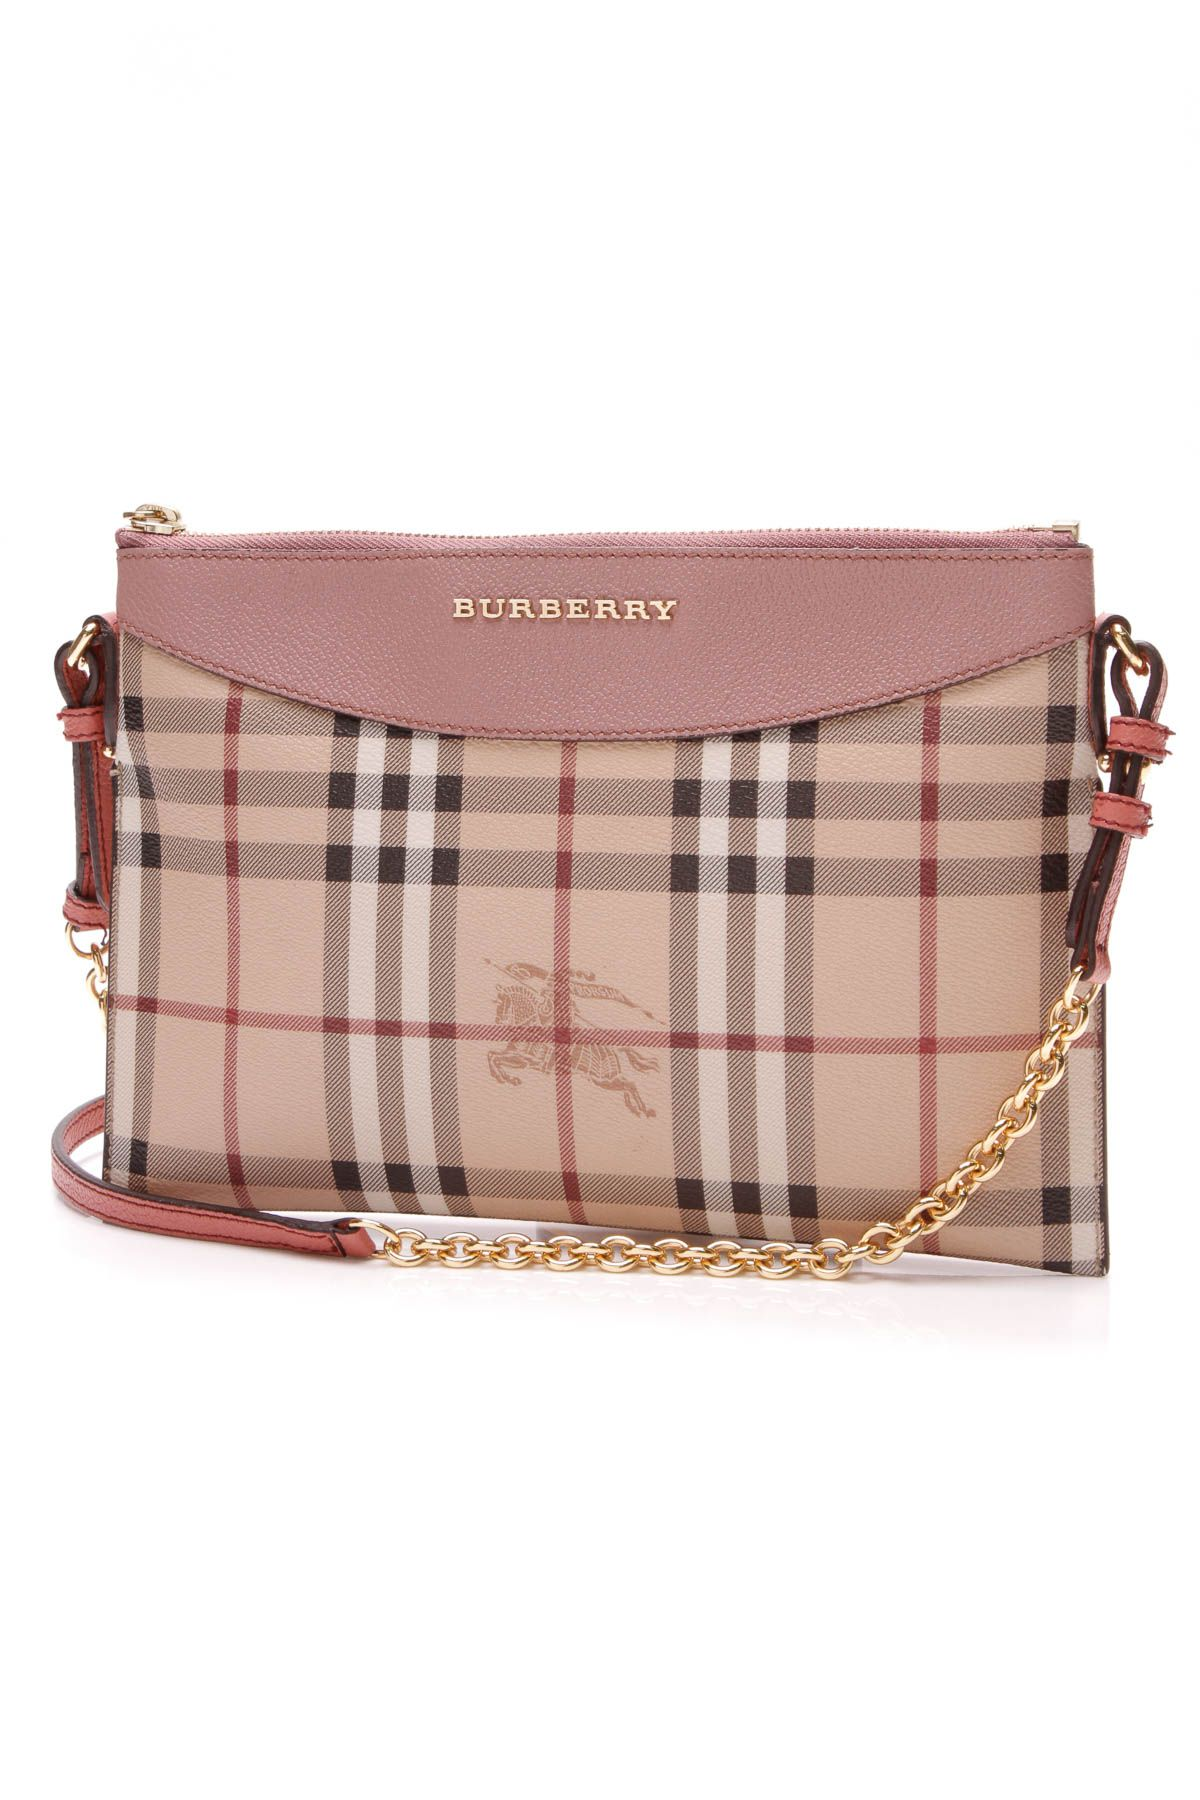 8581e0777666 Burberry Peyton Crossbody Bag - Haymarket Check Pink